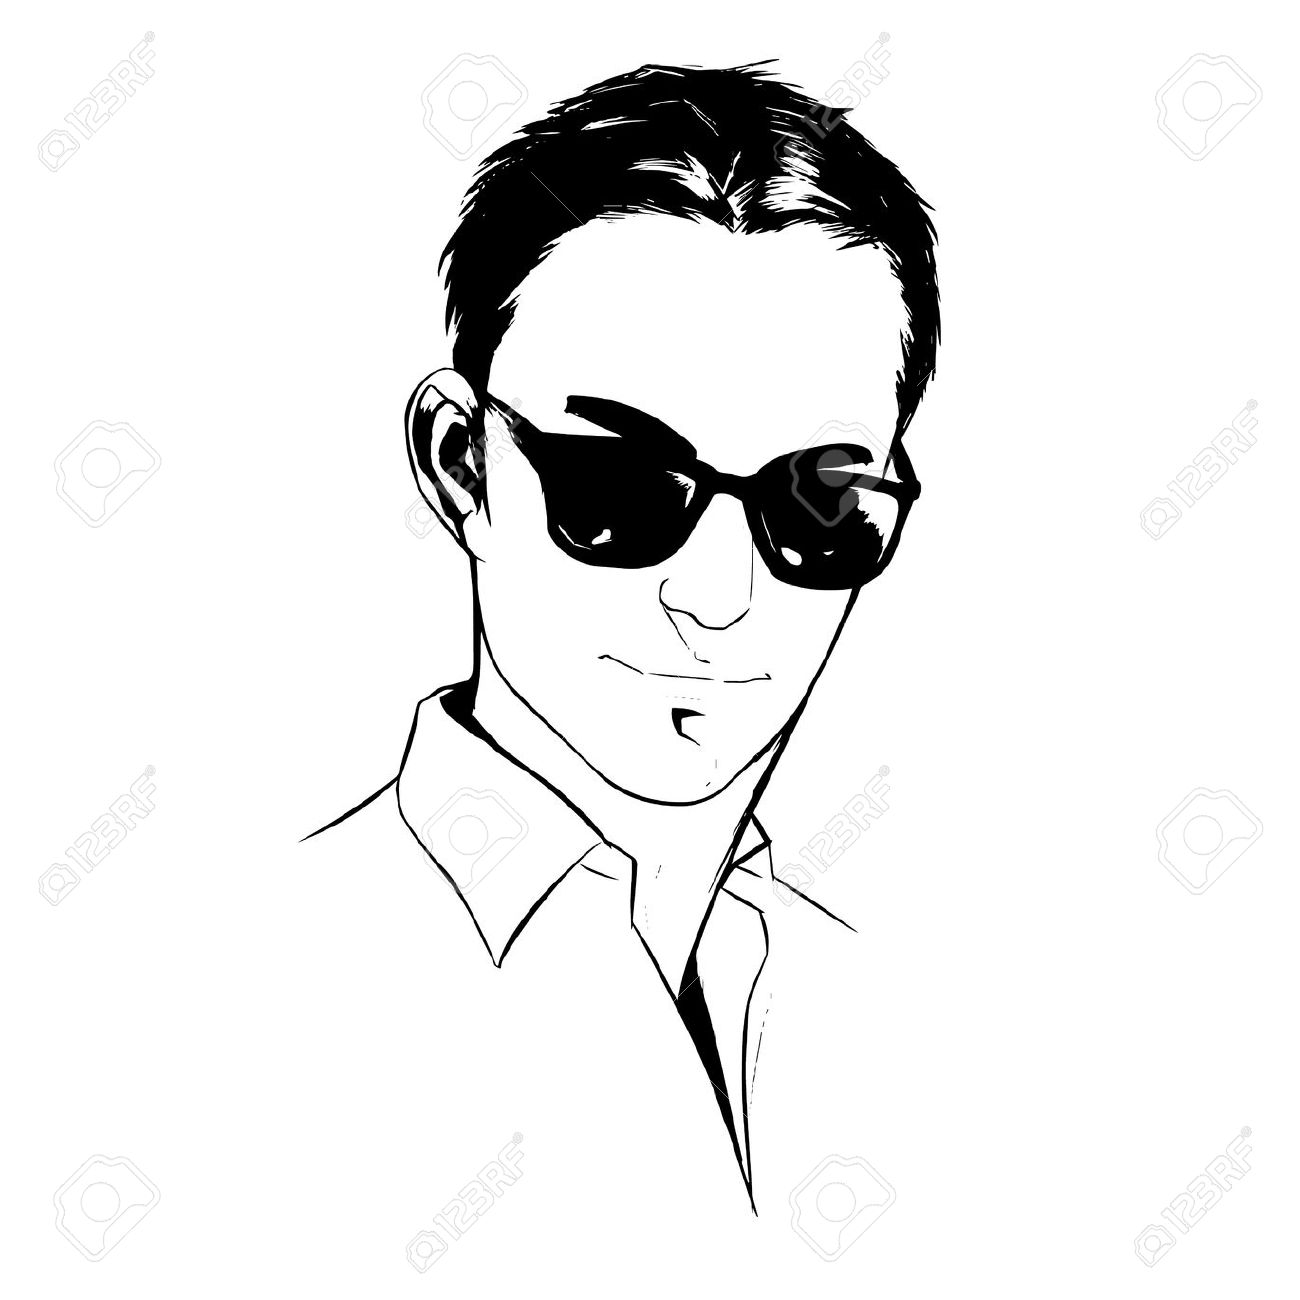 Handsome clipart.